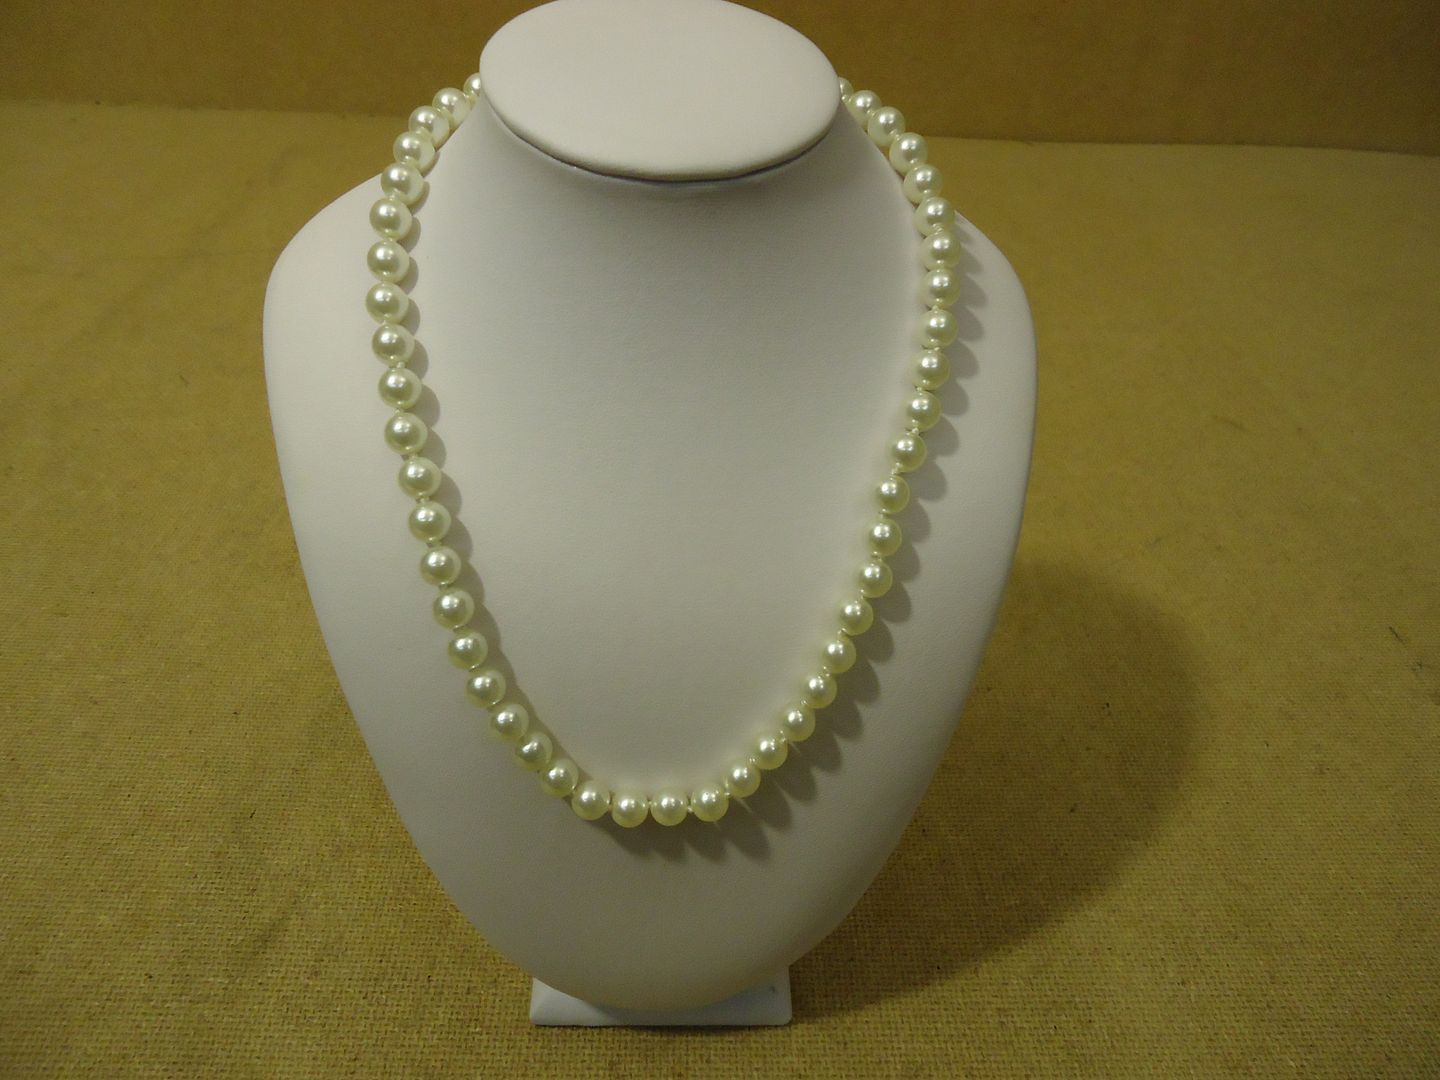 lm7410 120212-684n Designer Fashion Necklace 16in L Beaded/Strand Pearl Faux Female Adult Whites